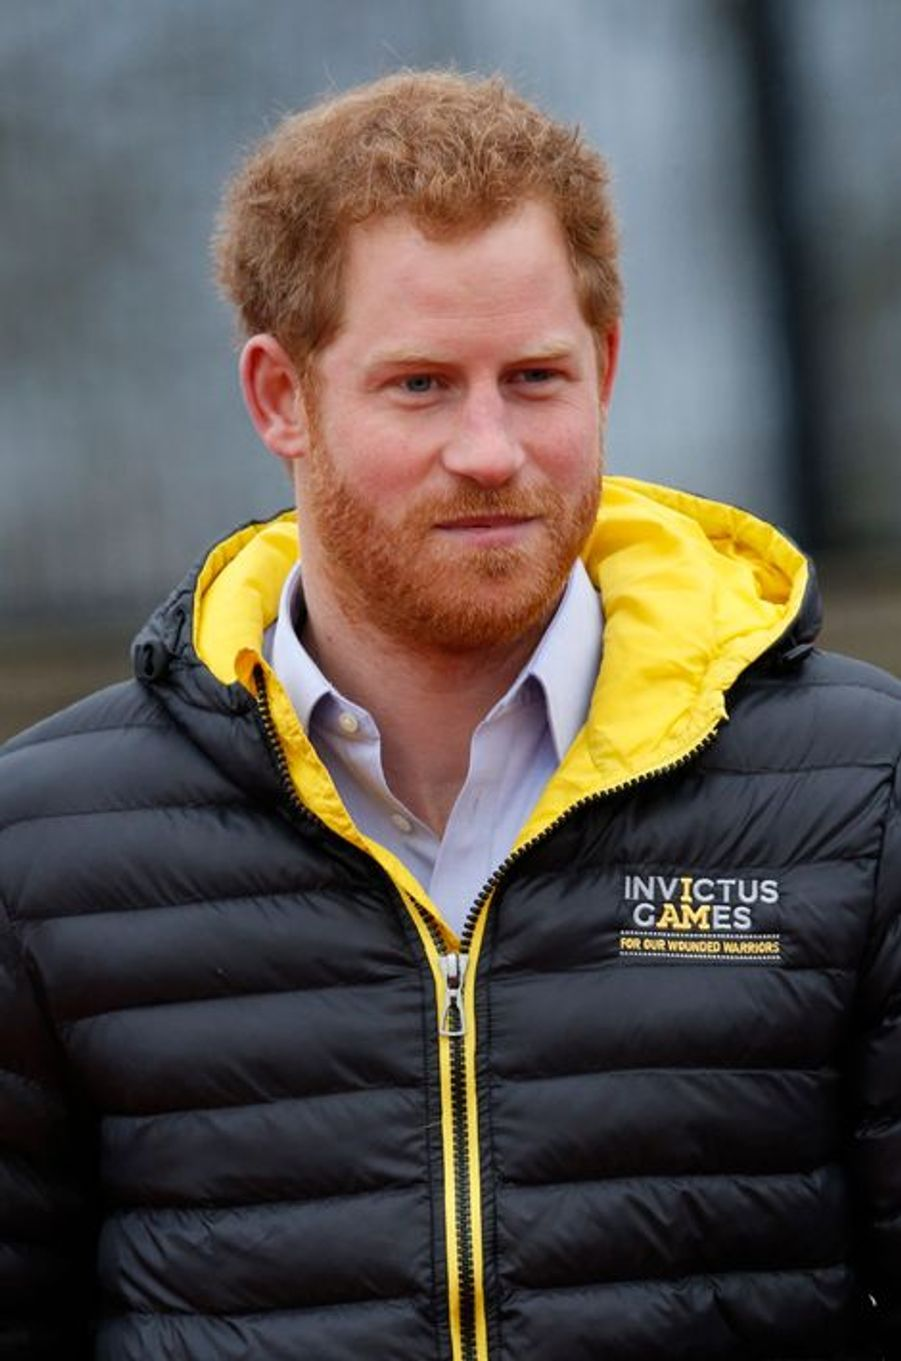 Le prince Harry à Bath, le 29 janvier 2016